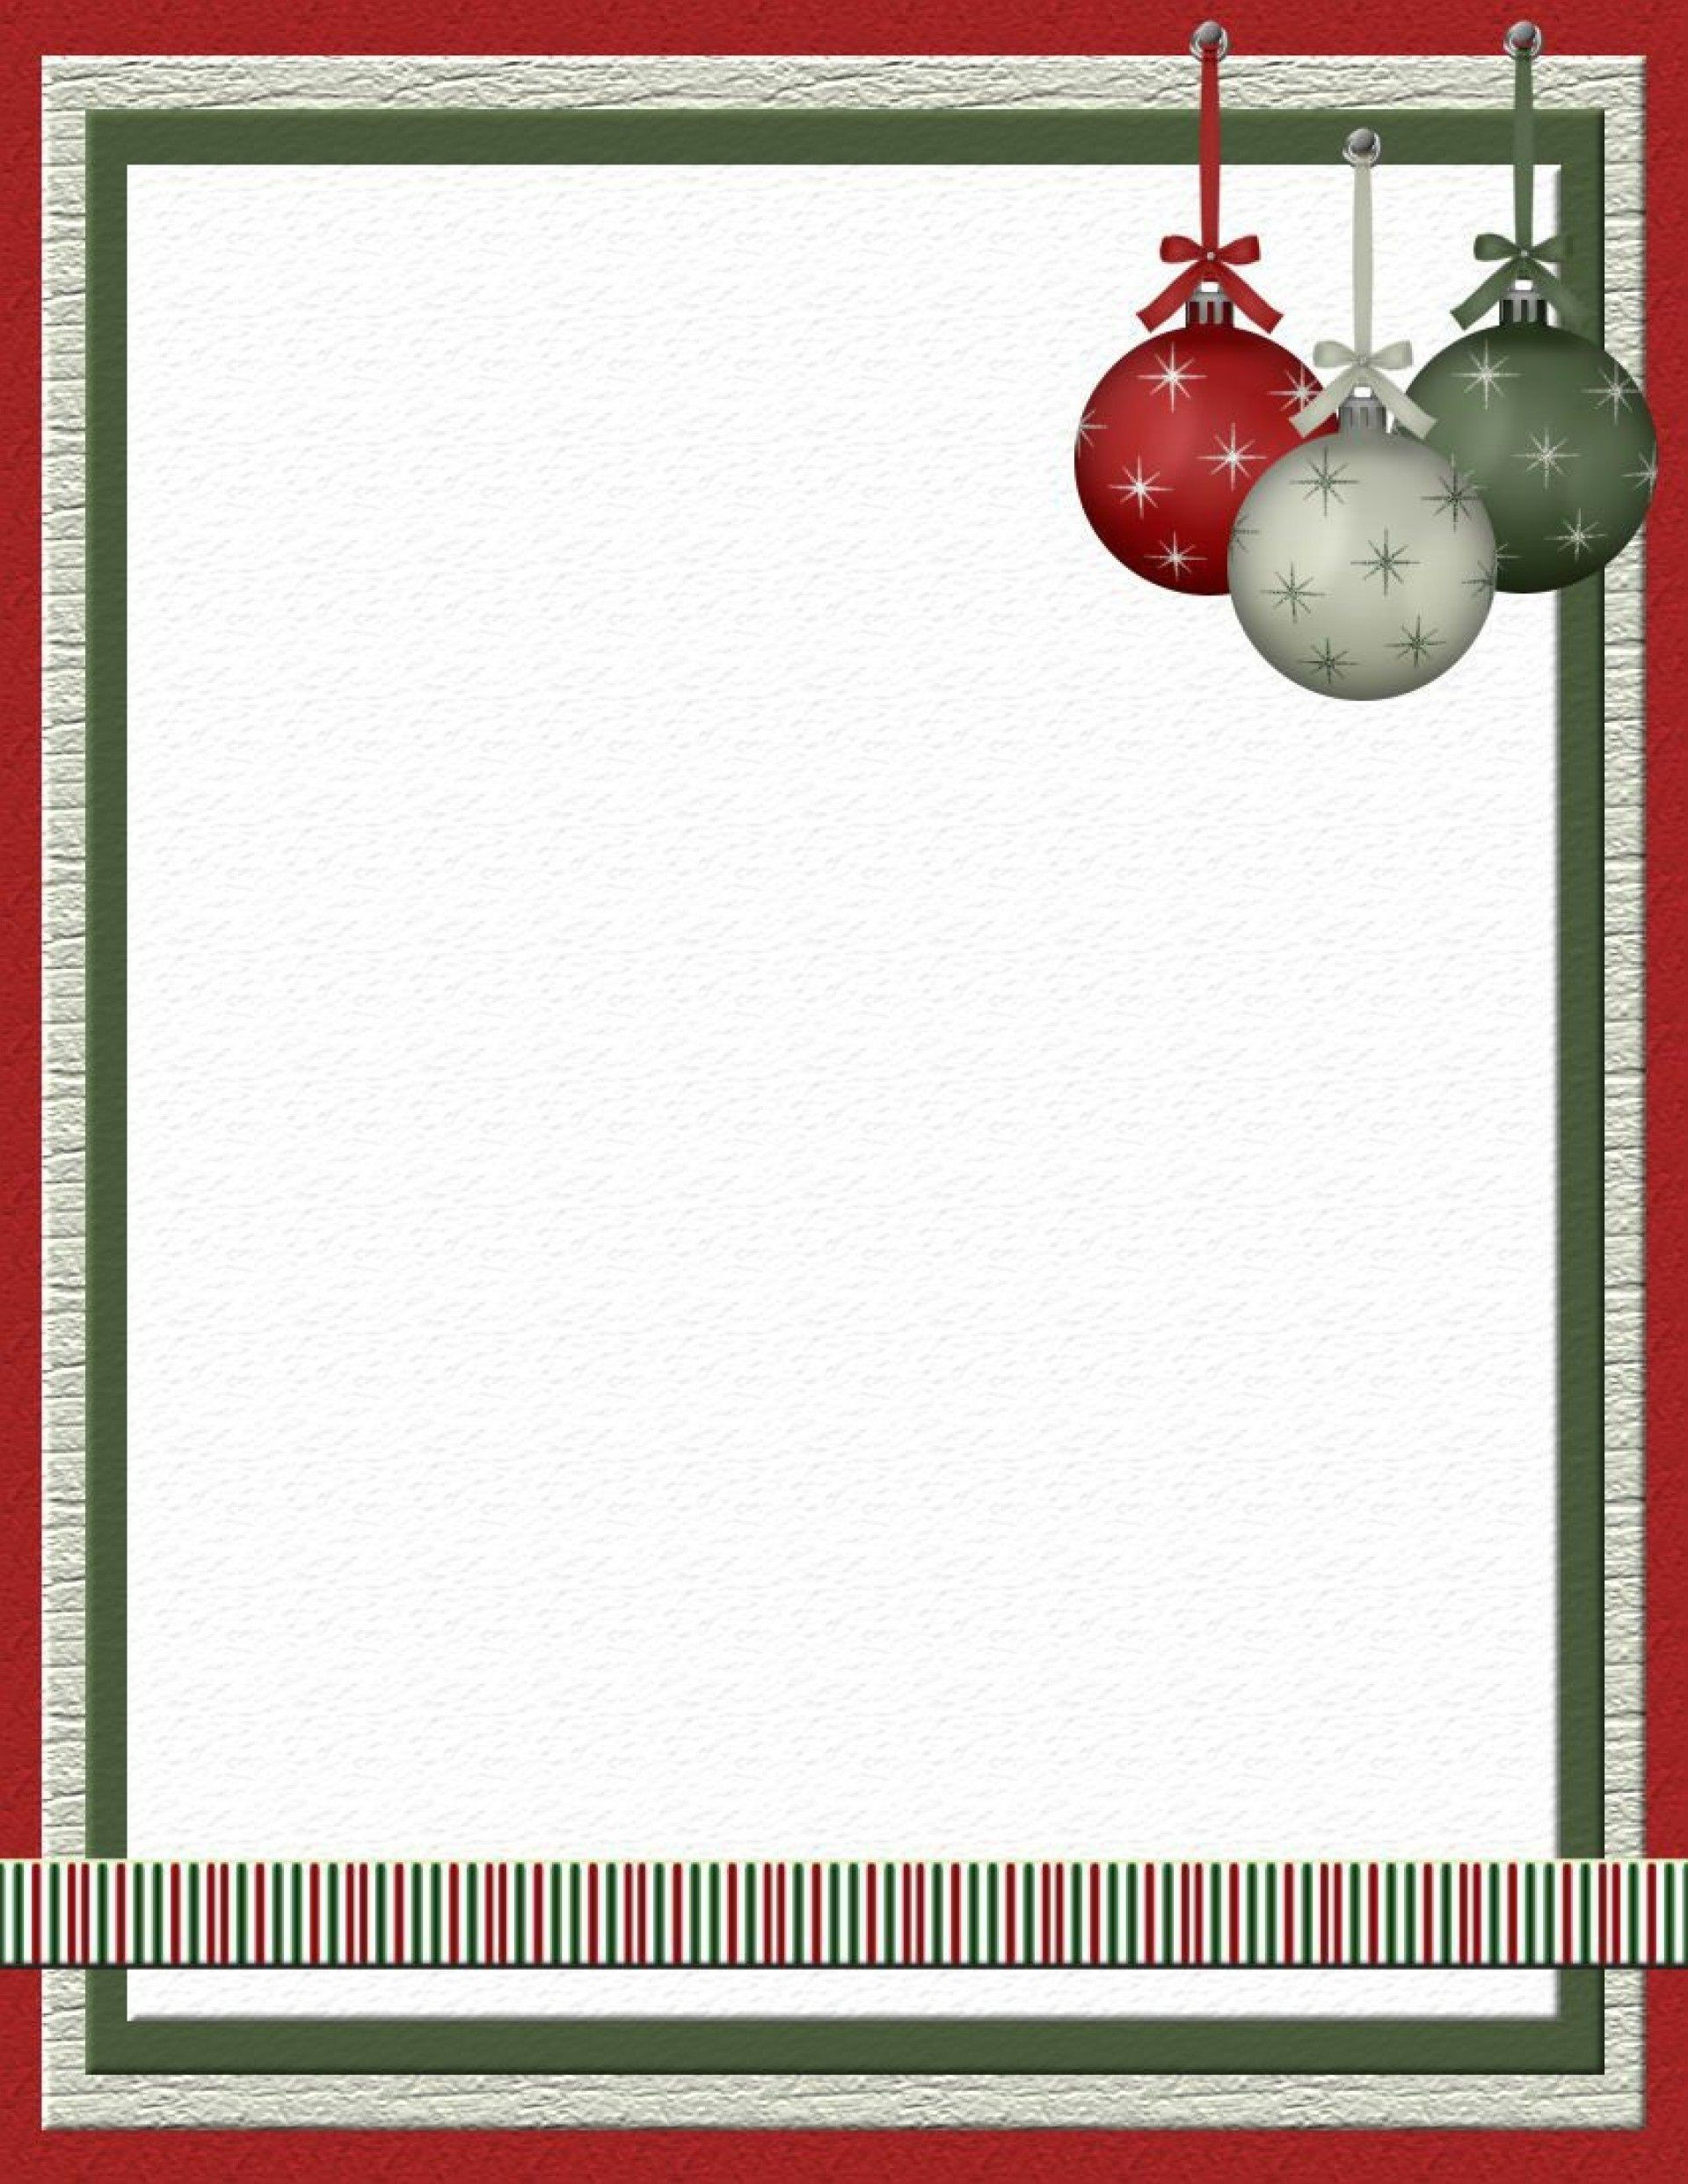 006 Stupendou Free Christian Christma Stationery Template For Word High Definition 1920